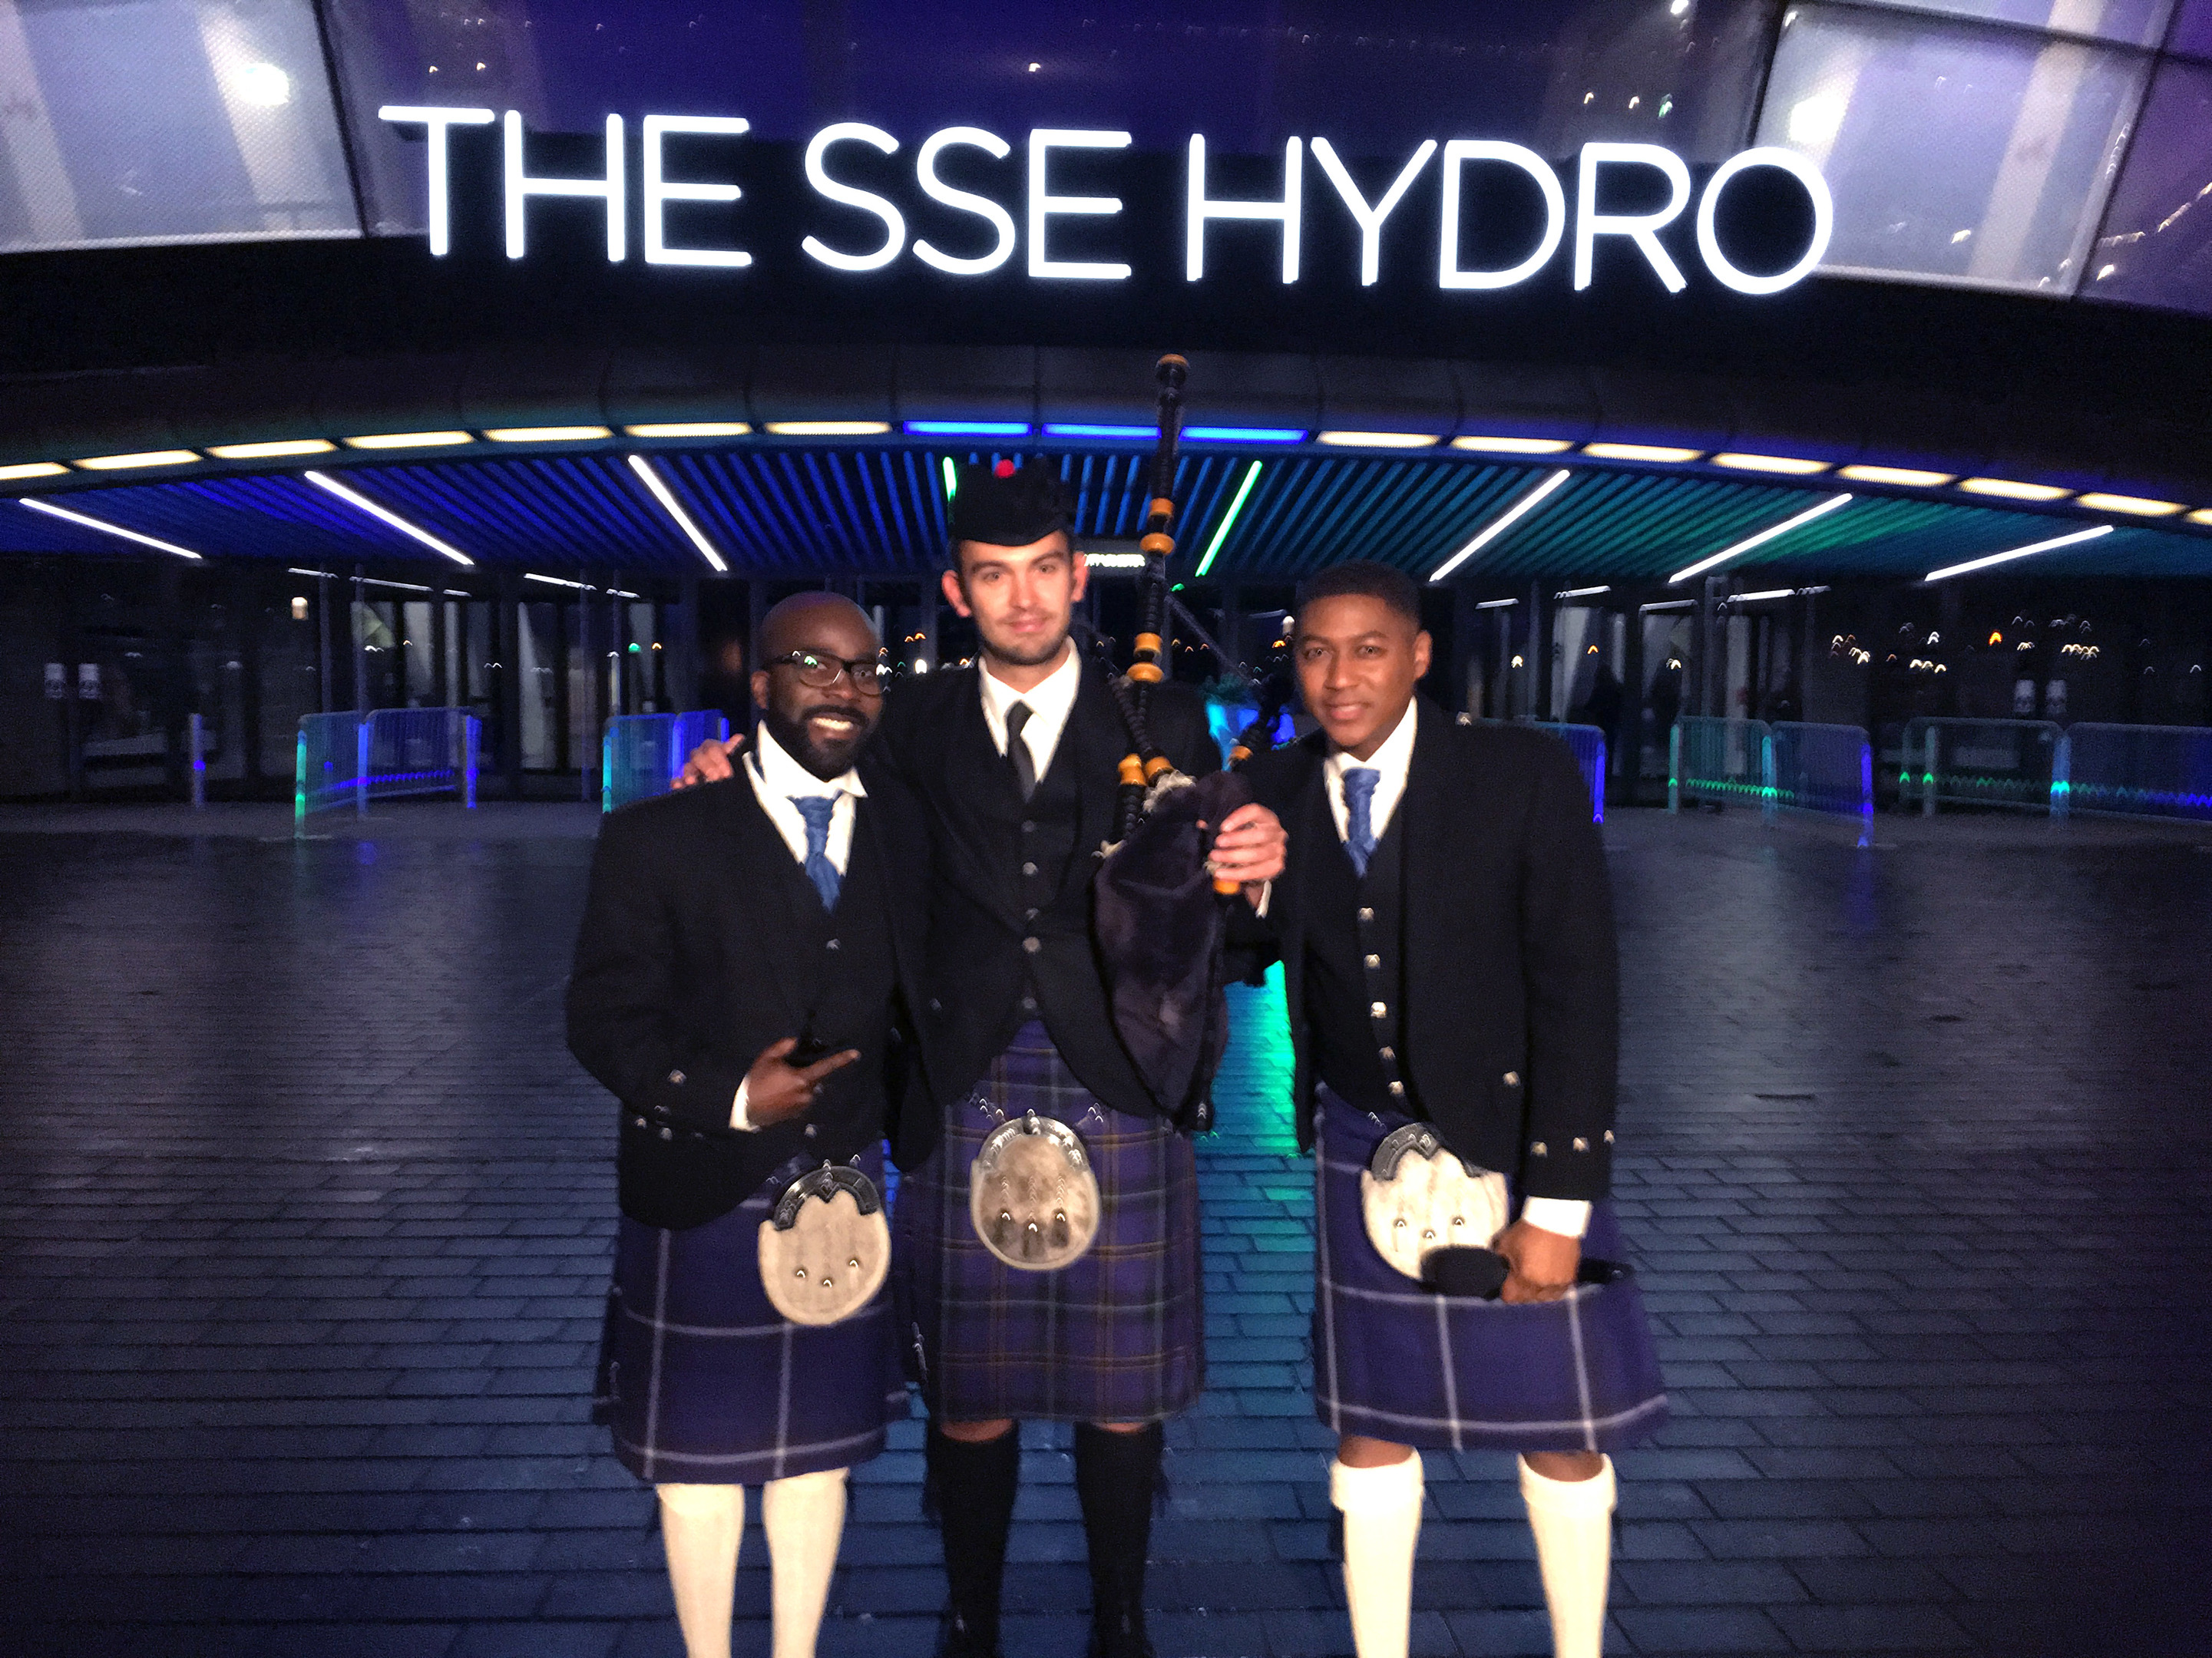 Craig Weir (centre) with 2016 MOBO Awards show hosts Melvin Odoom (left) and Rickie Williams outside the SSE Hydro in Glasgow.